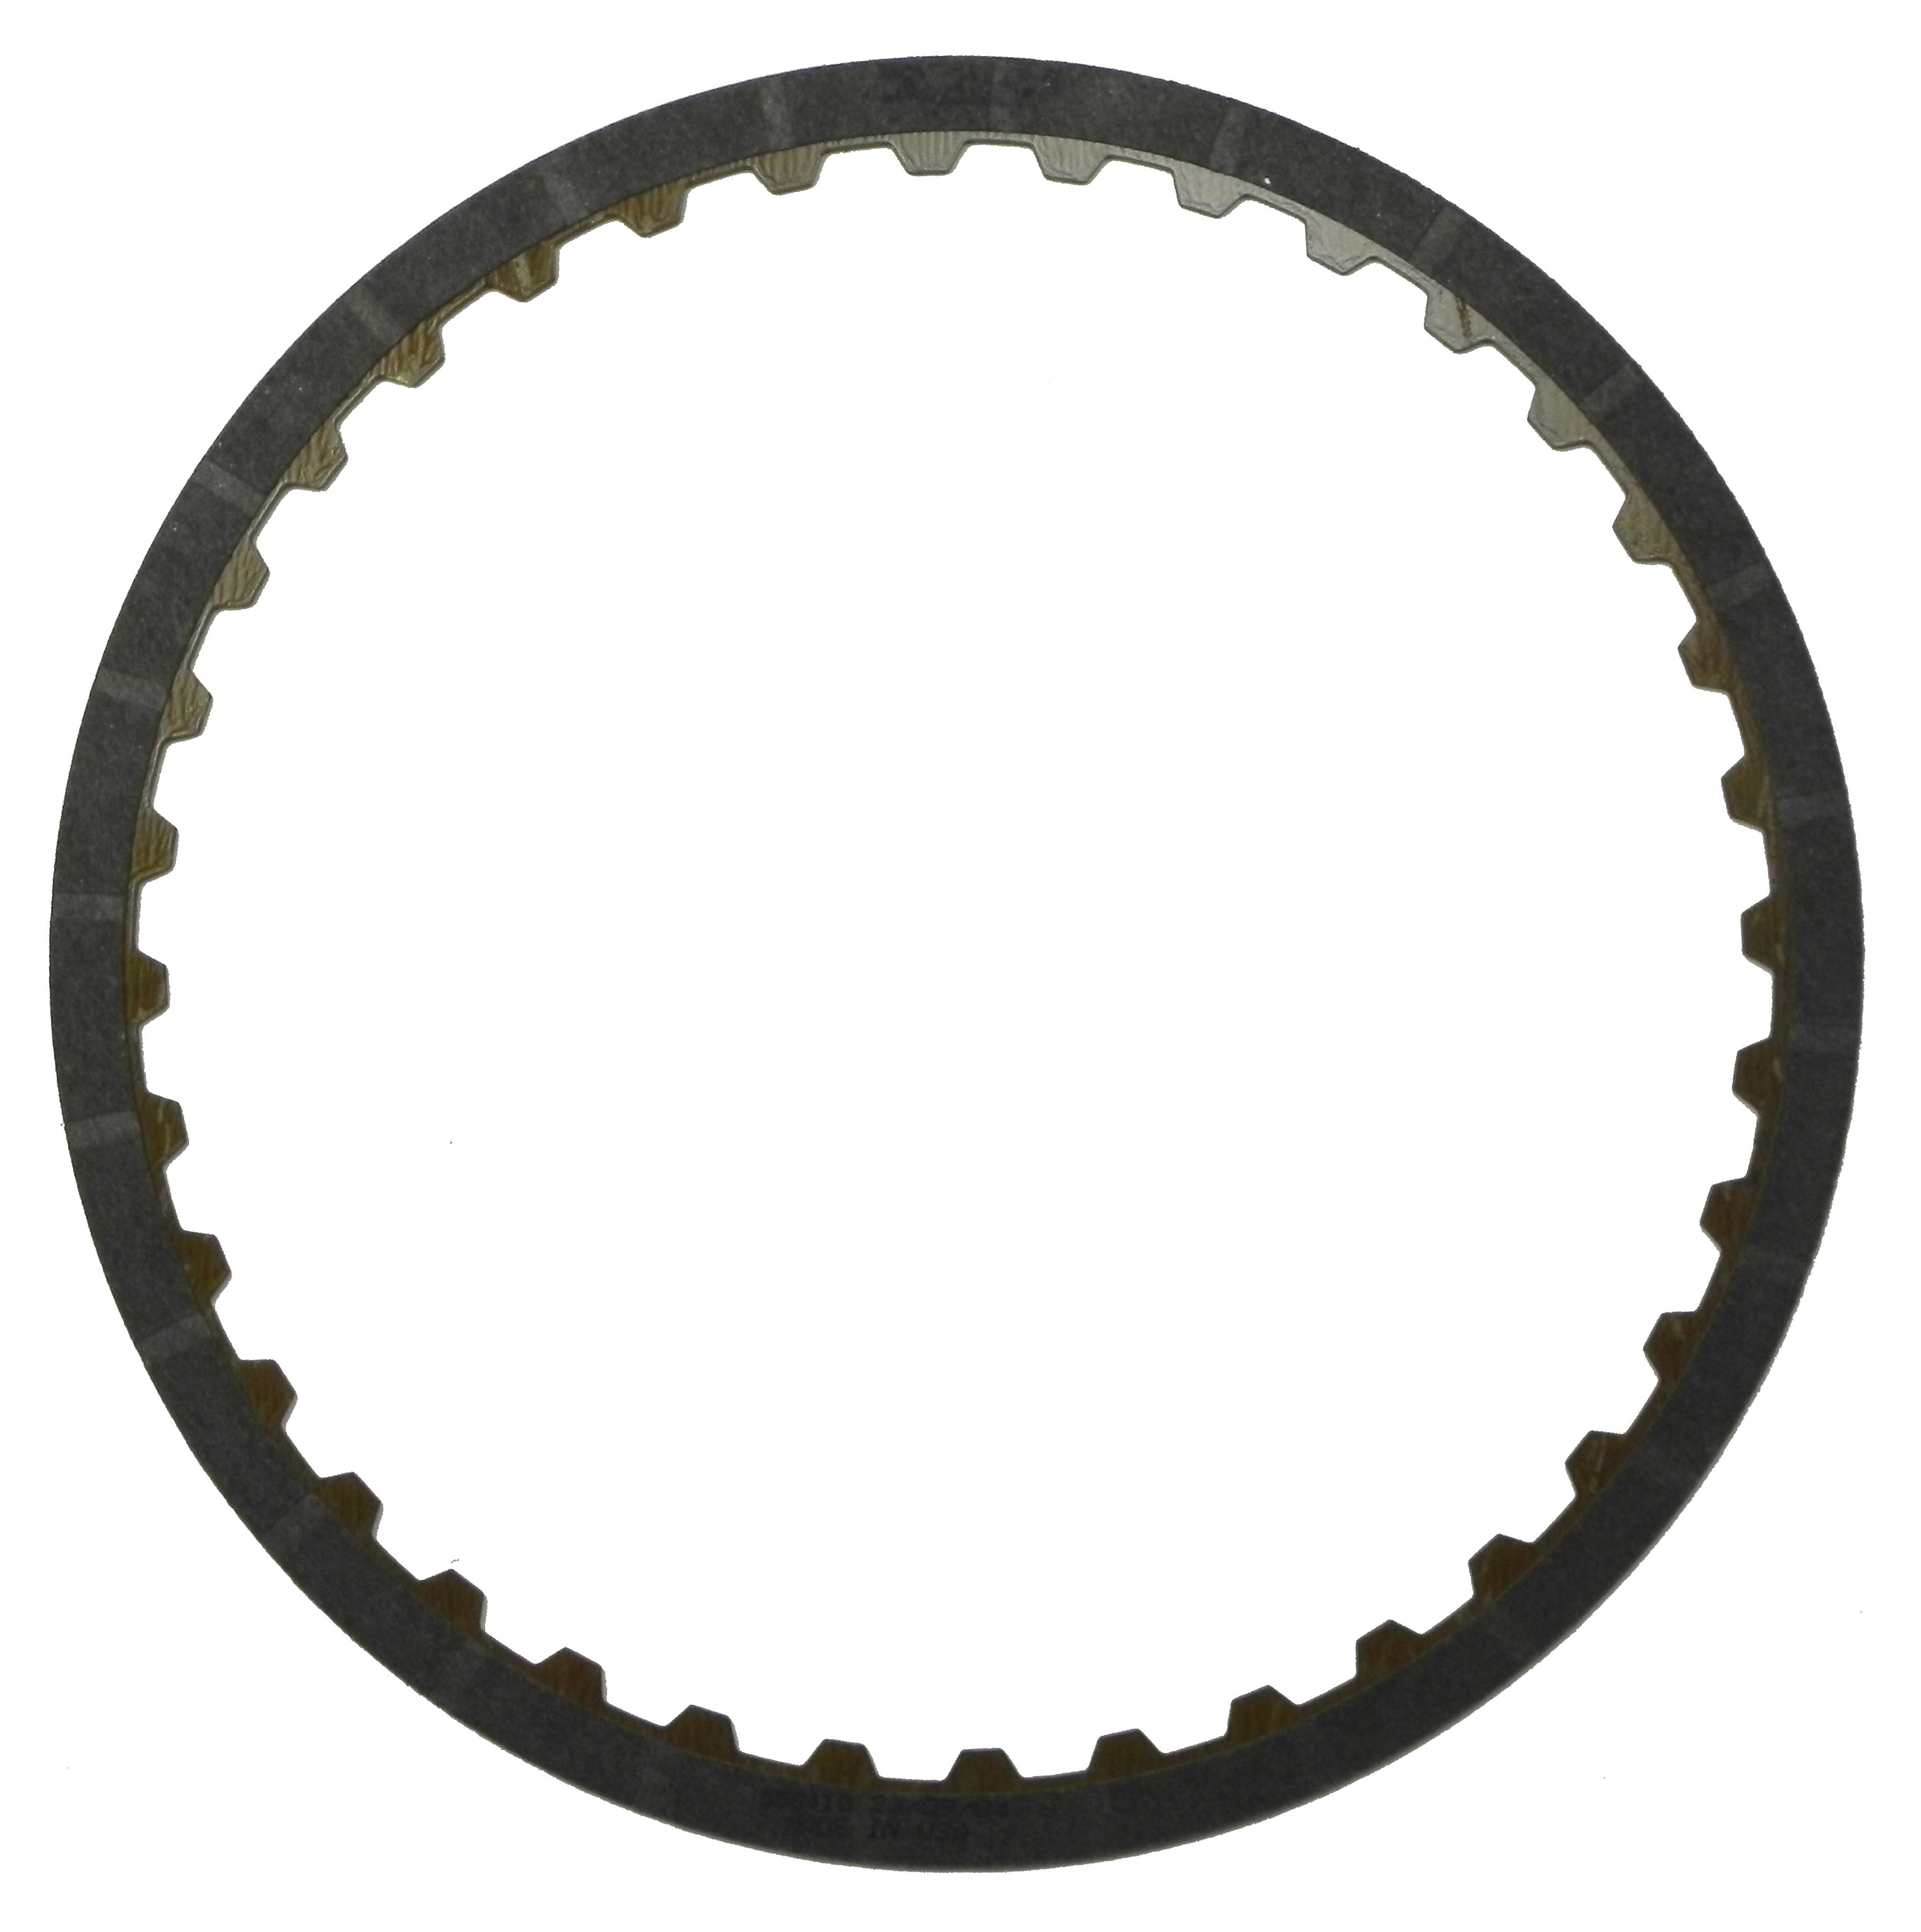 R558410 | 1999-ON Friction Clutch Plate High Energy Reverse, Overdrive, Single Sided, ID Spline High Energy